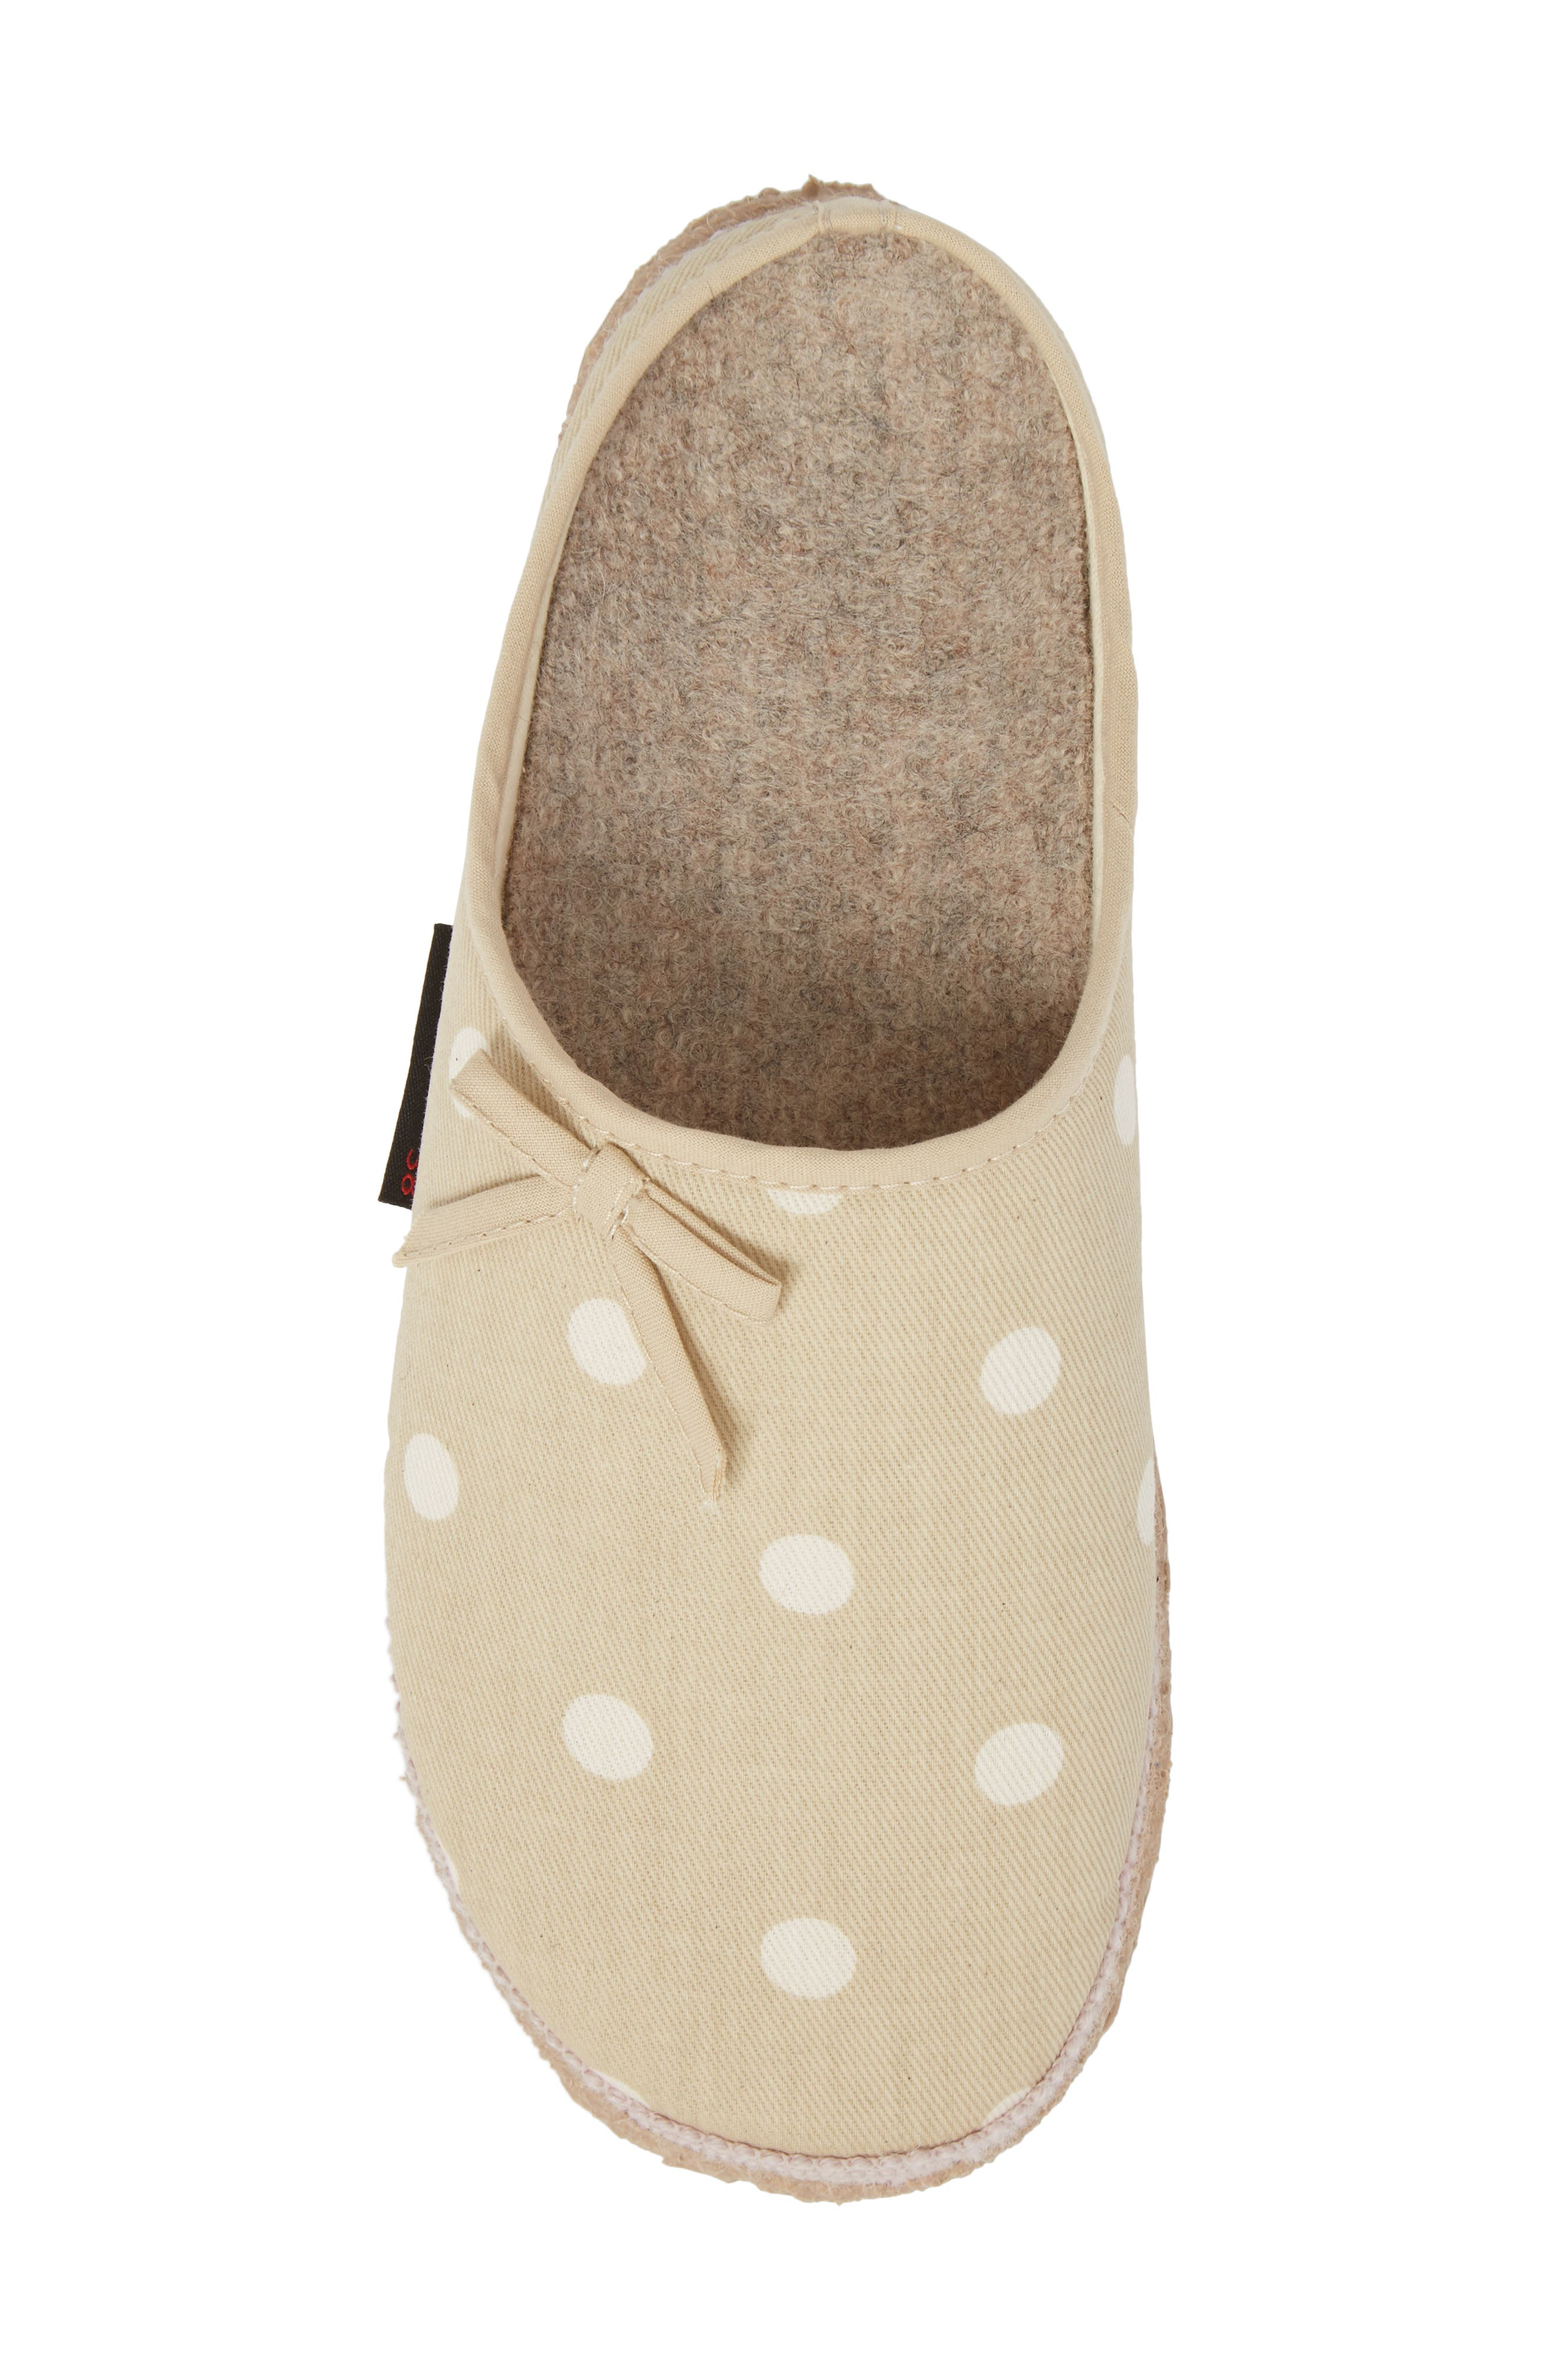 Meadow Slipper,                             Alternate thumbnail 5, color,                             Natural Fabric